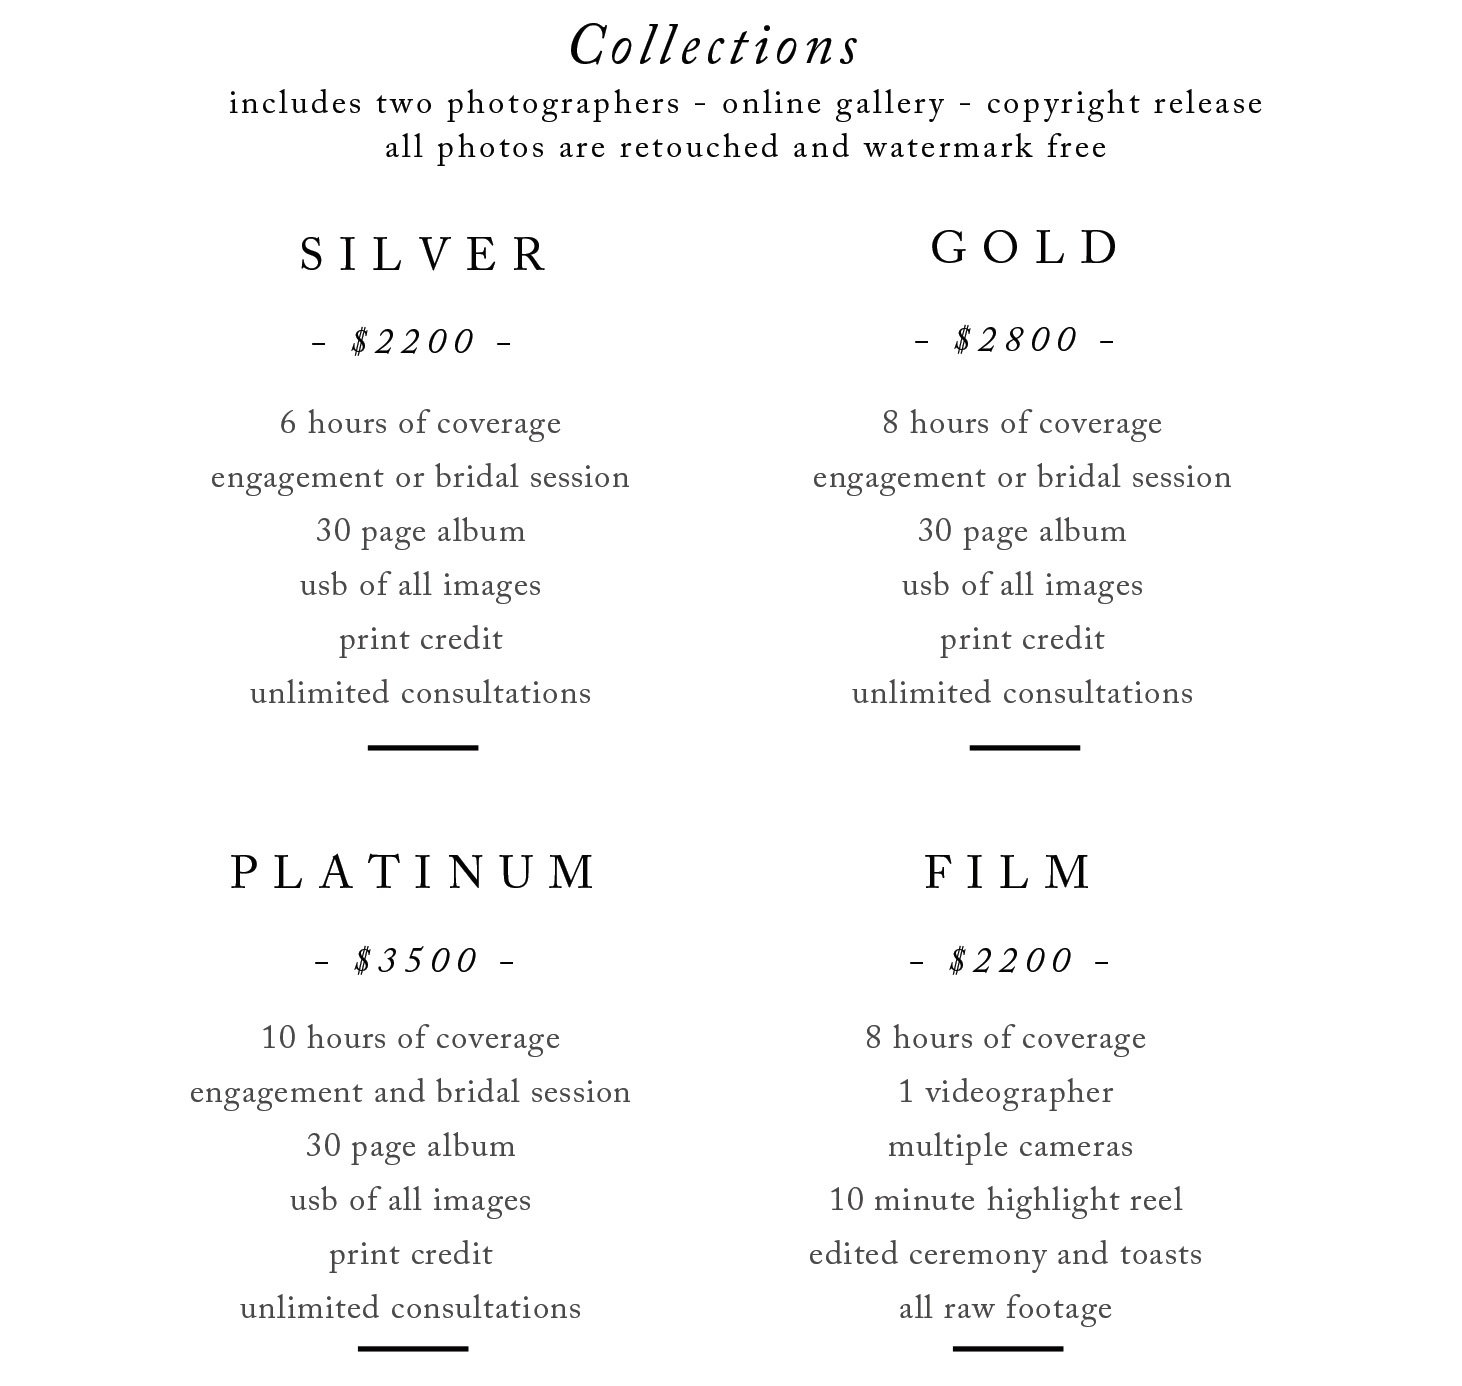 Wedding Photography Pricing.Wedding Photography Pricing And Packages Dustin